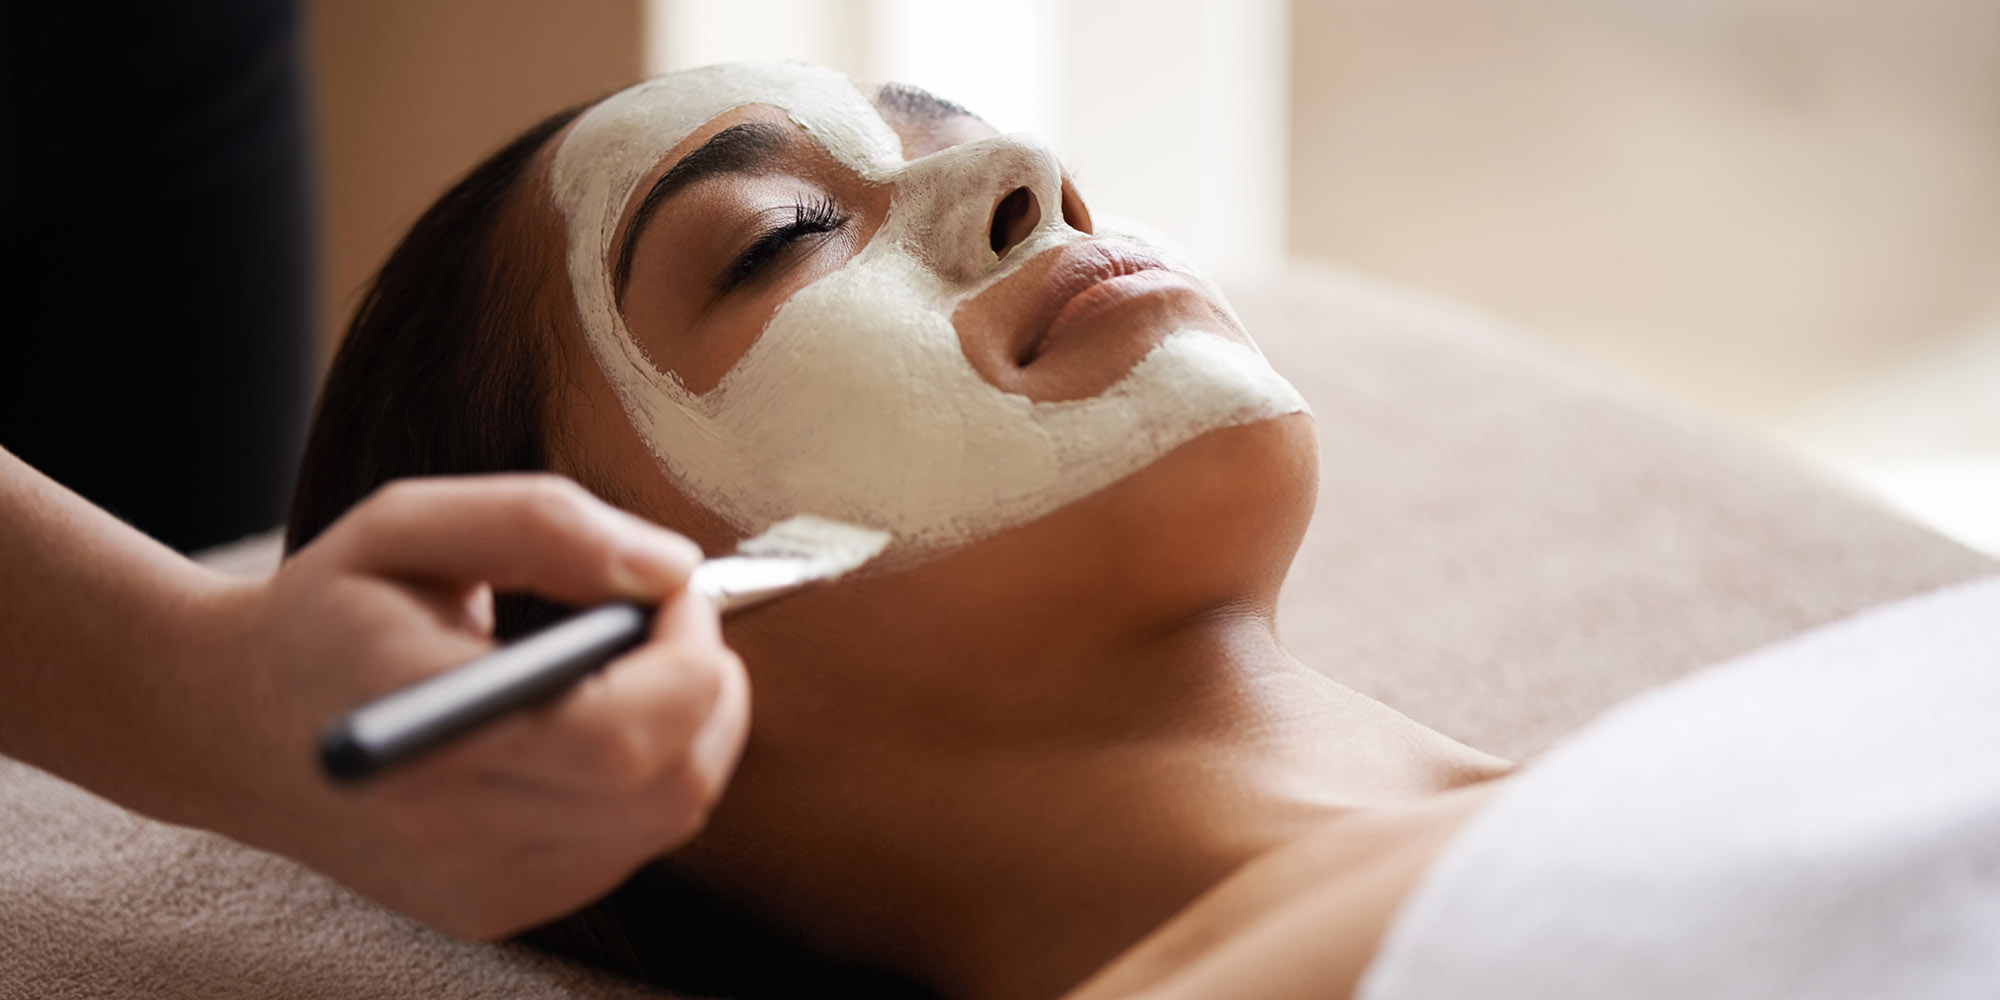 A woman has a clay mask applied using a brush